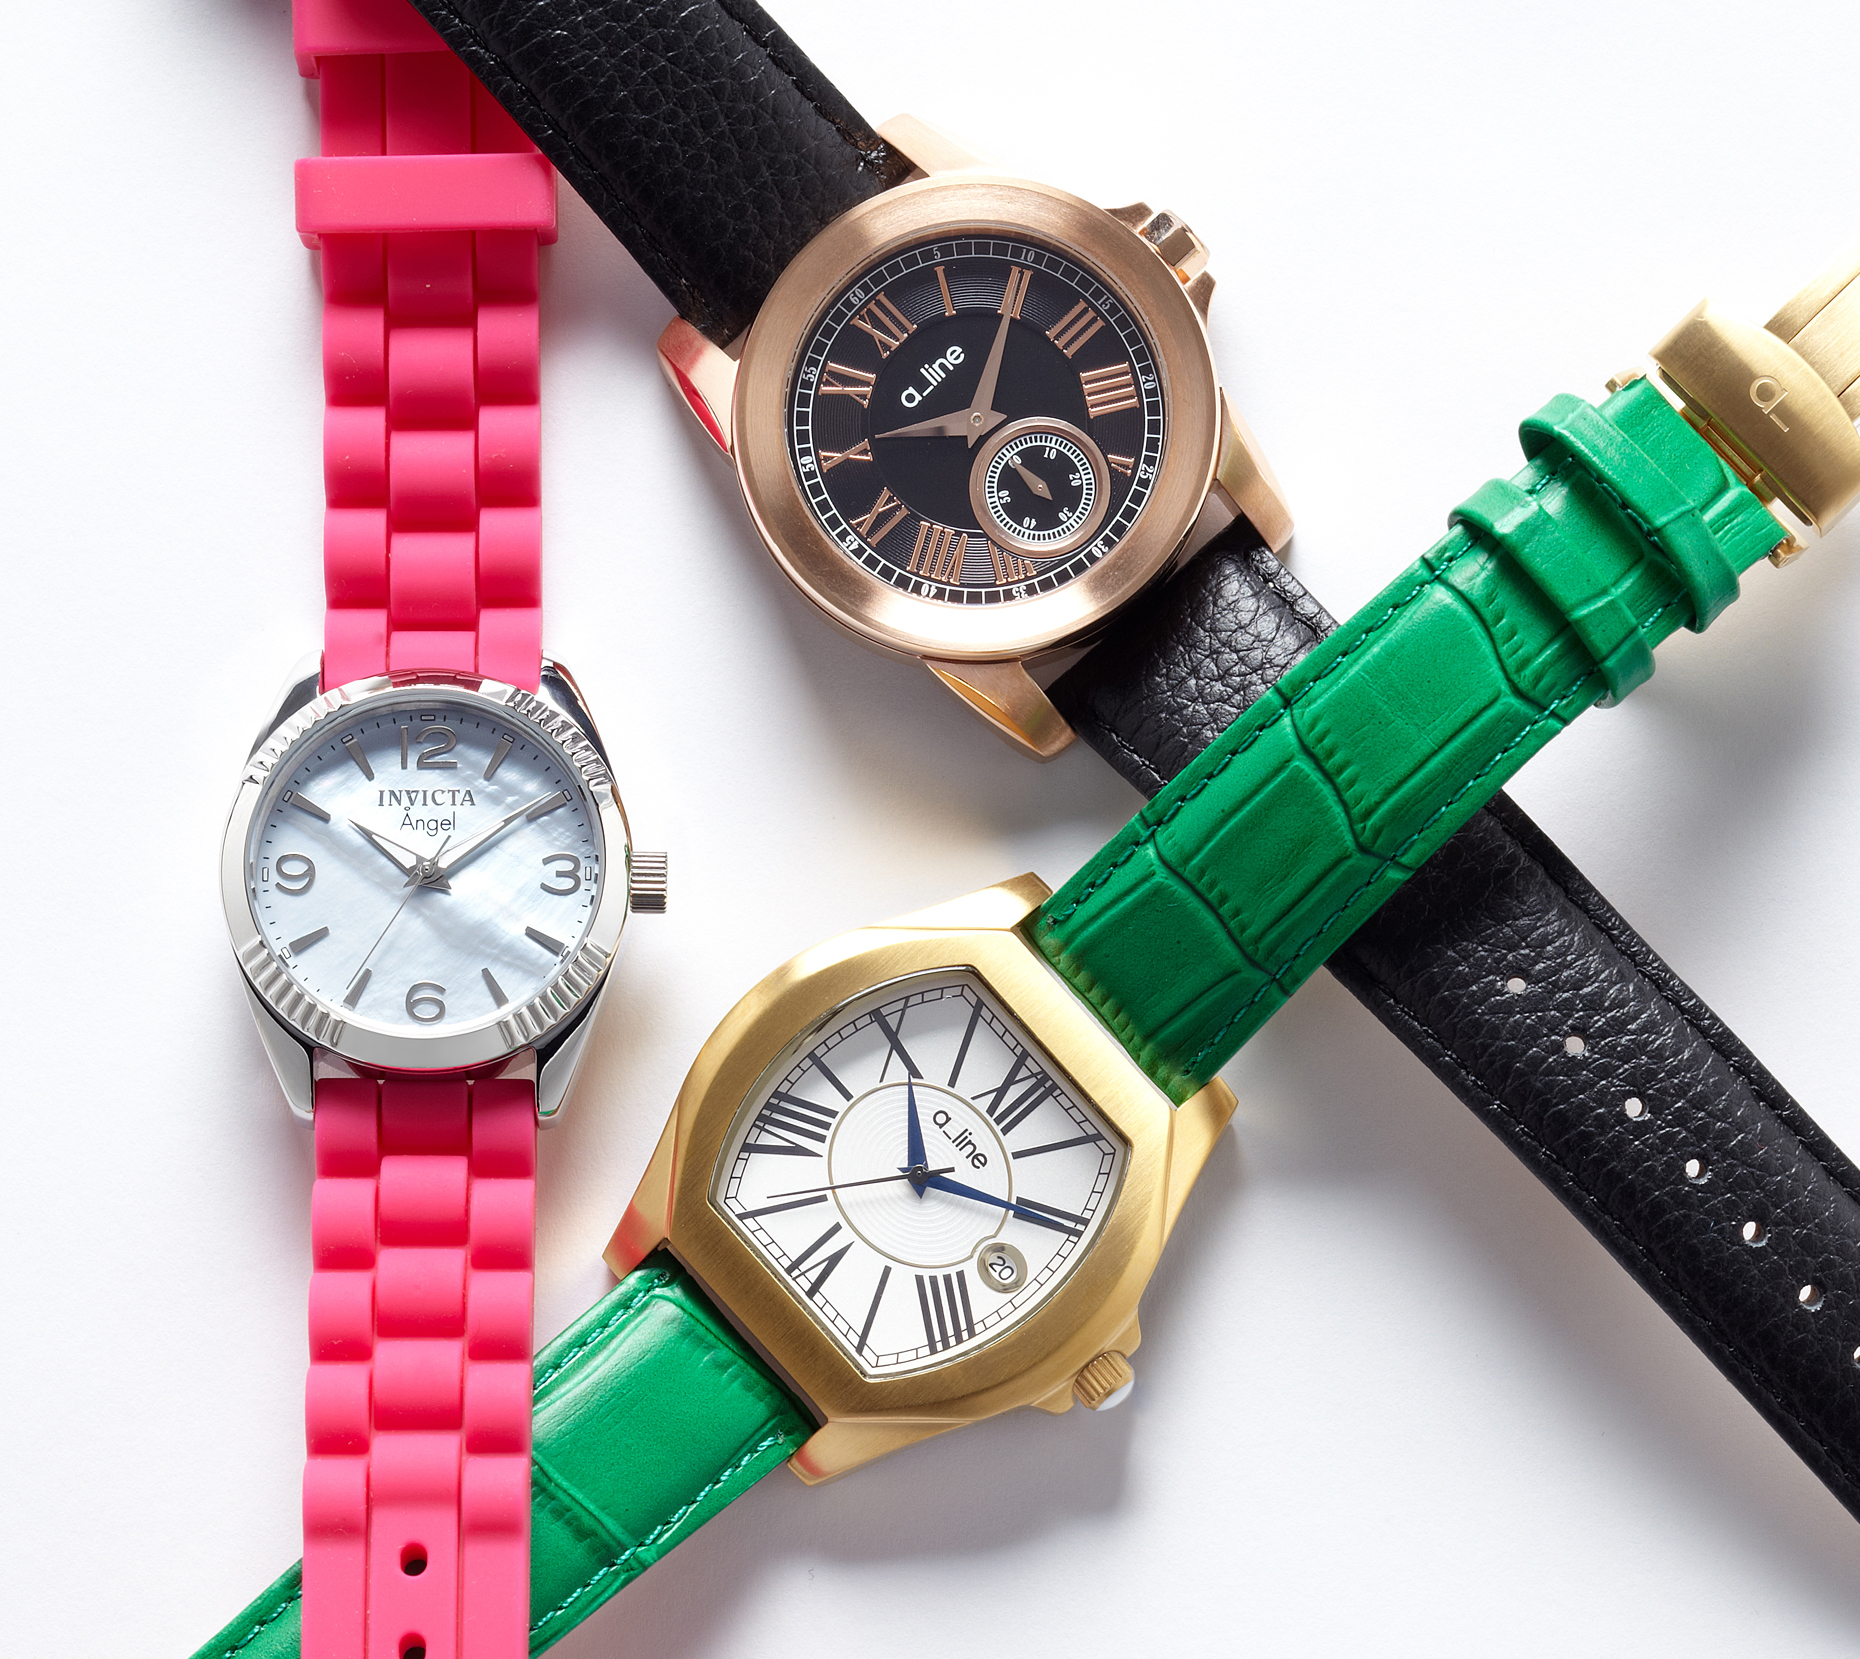 140224_ALine-and-Invicta-Watches-10141998_0320_A1